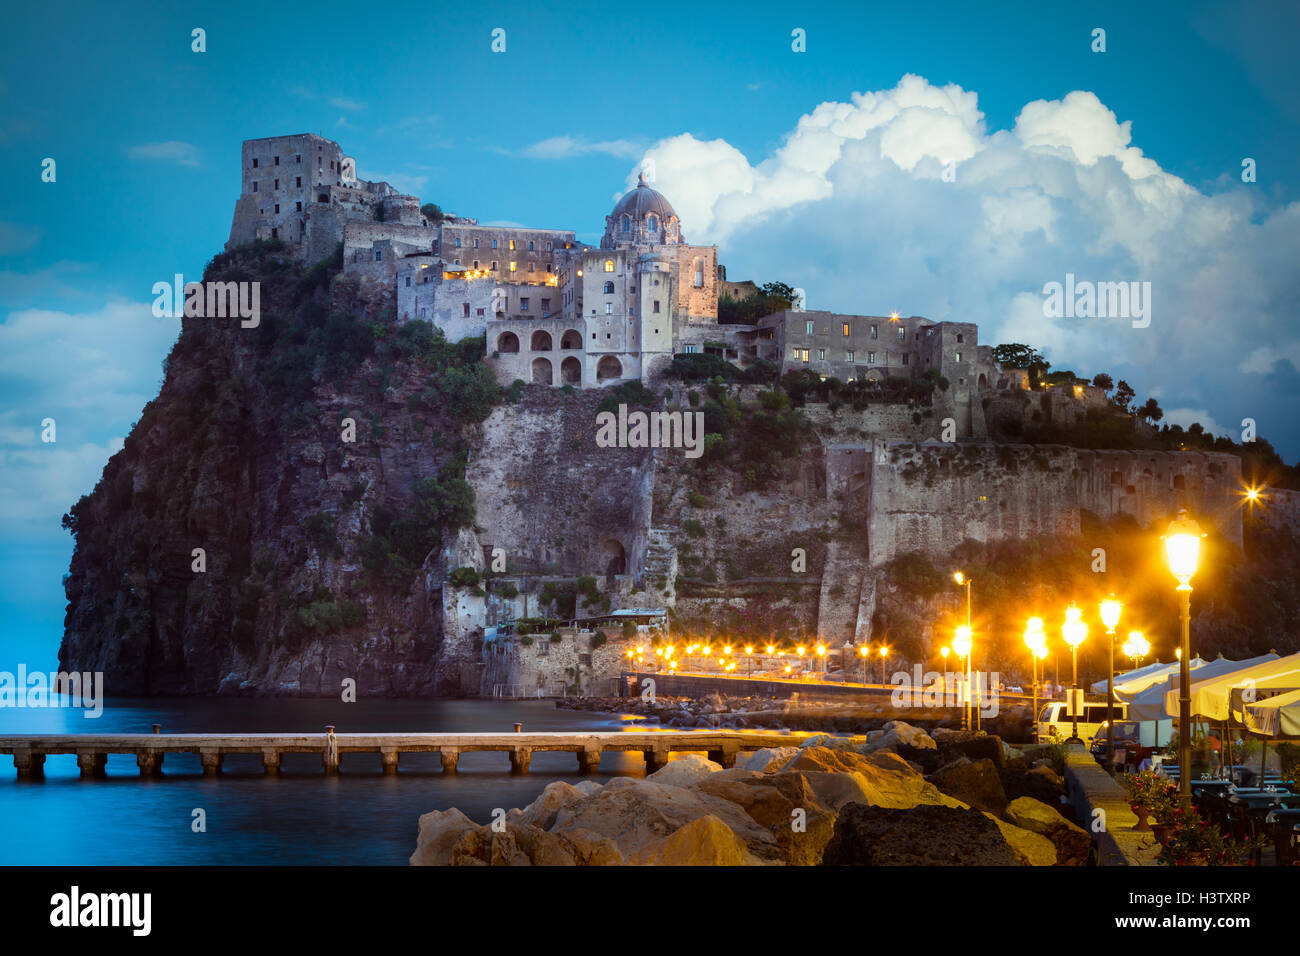 Castello Aragonese is a medieval castle next to Ischia (one of the Phlegraean Islands) - Stock Image